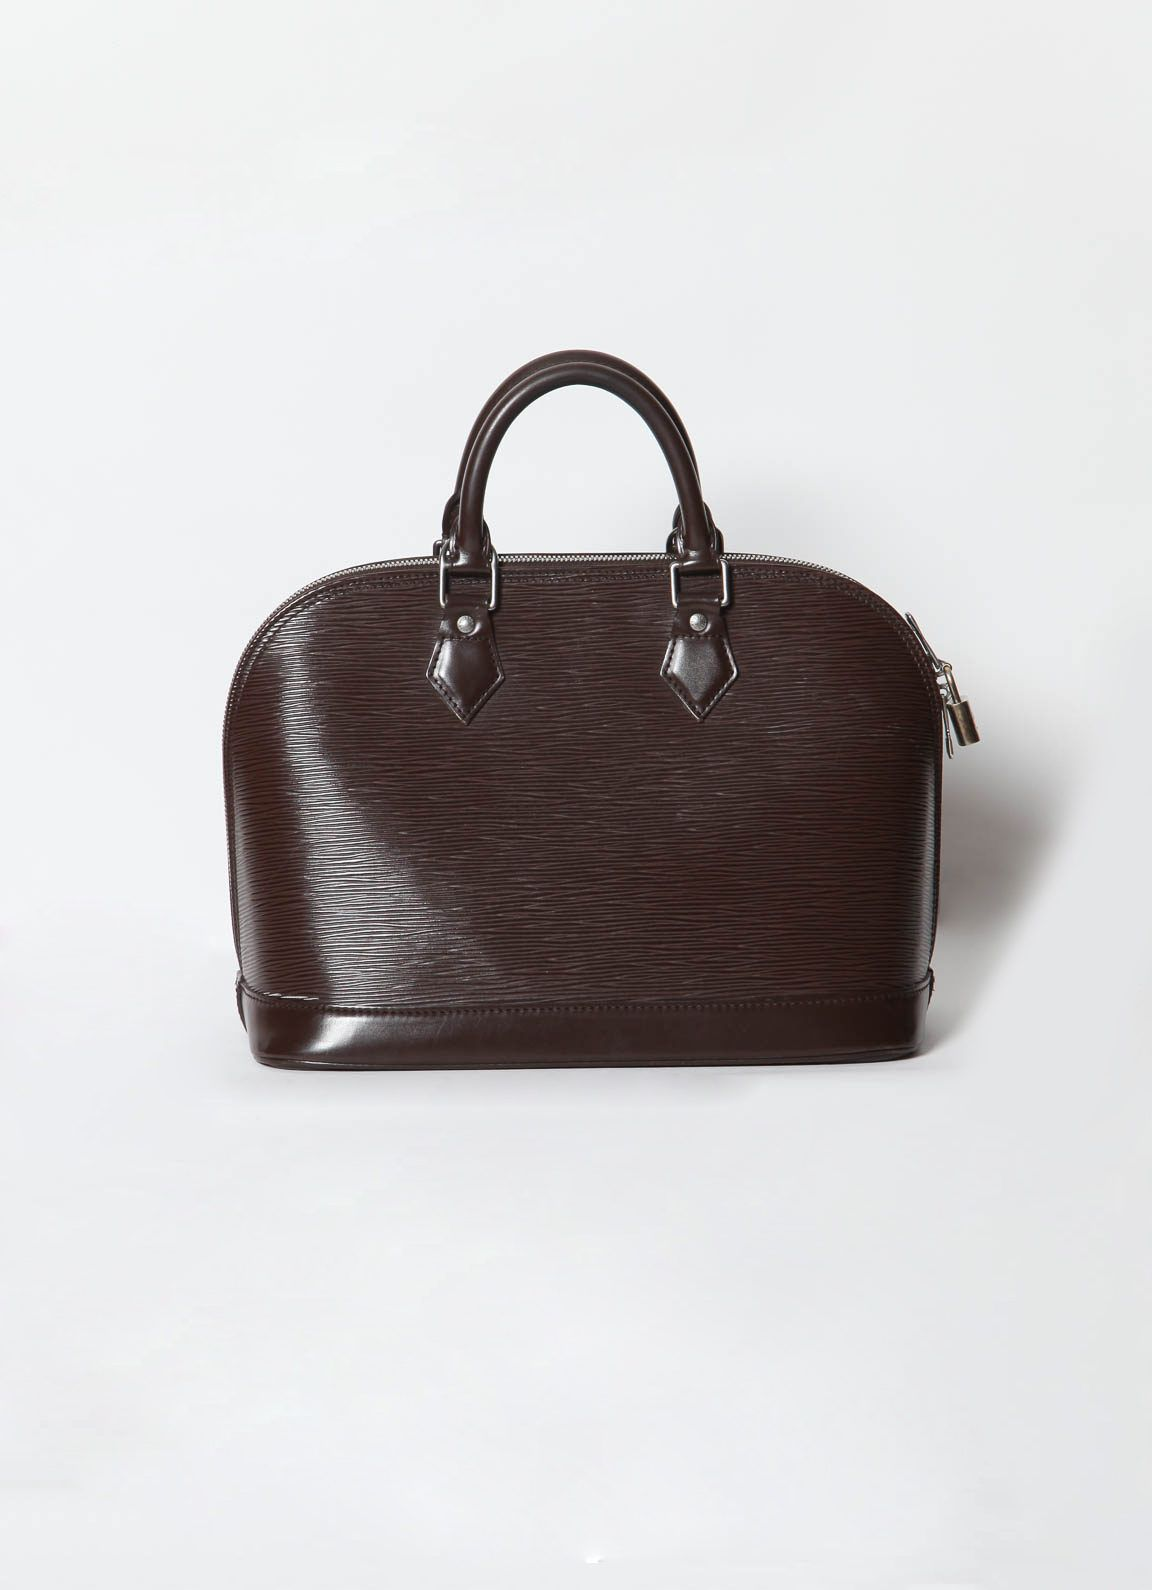 eba2e4a2905 Louis Vuitton Epi Leather Alma PM Bag